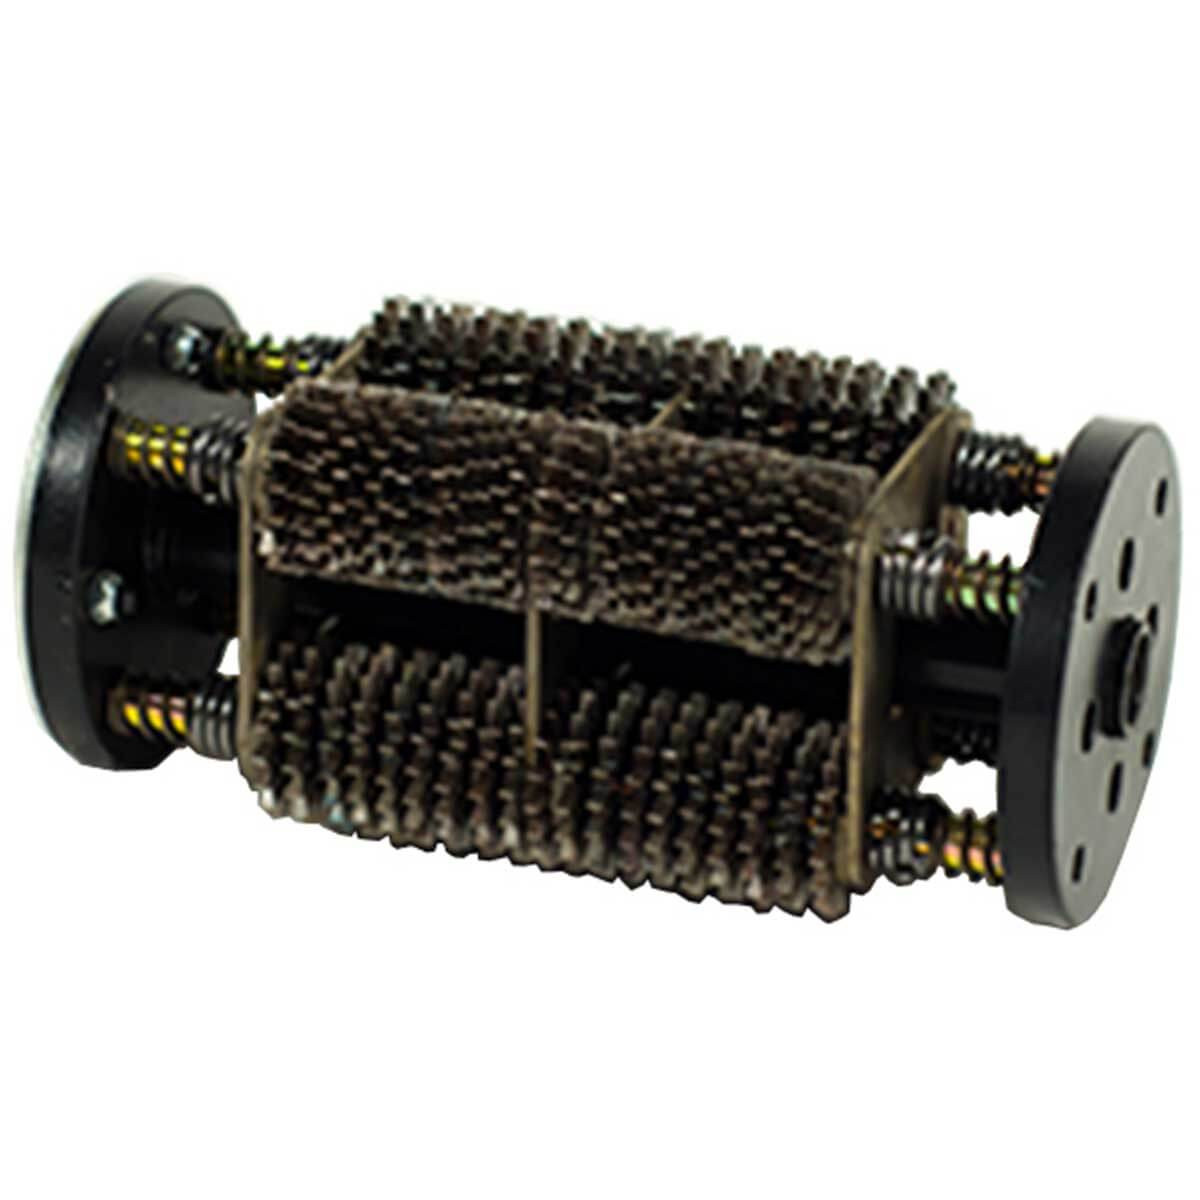 Bartell B-2 Cutters cage assembly